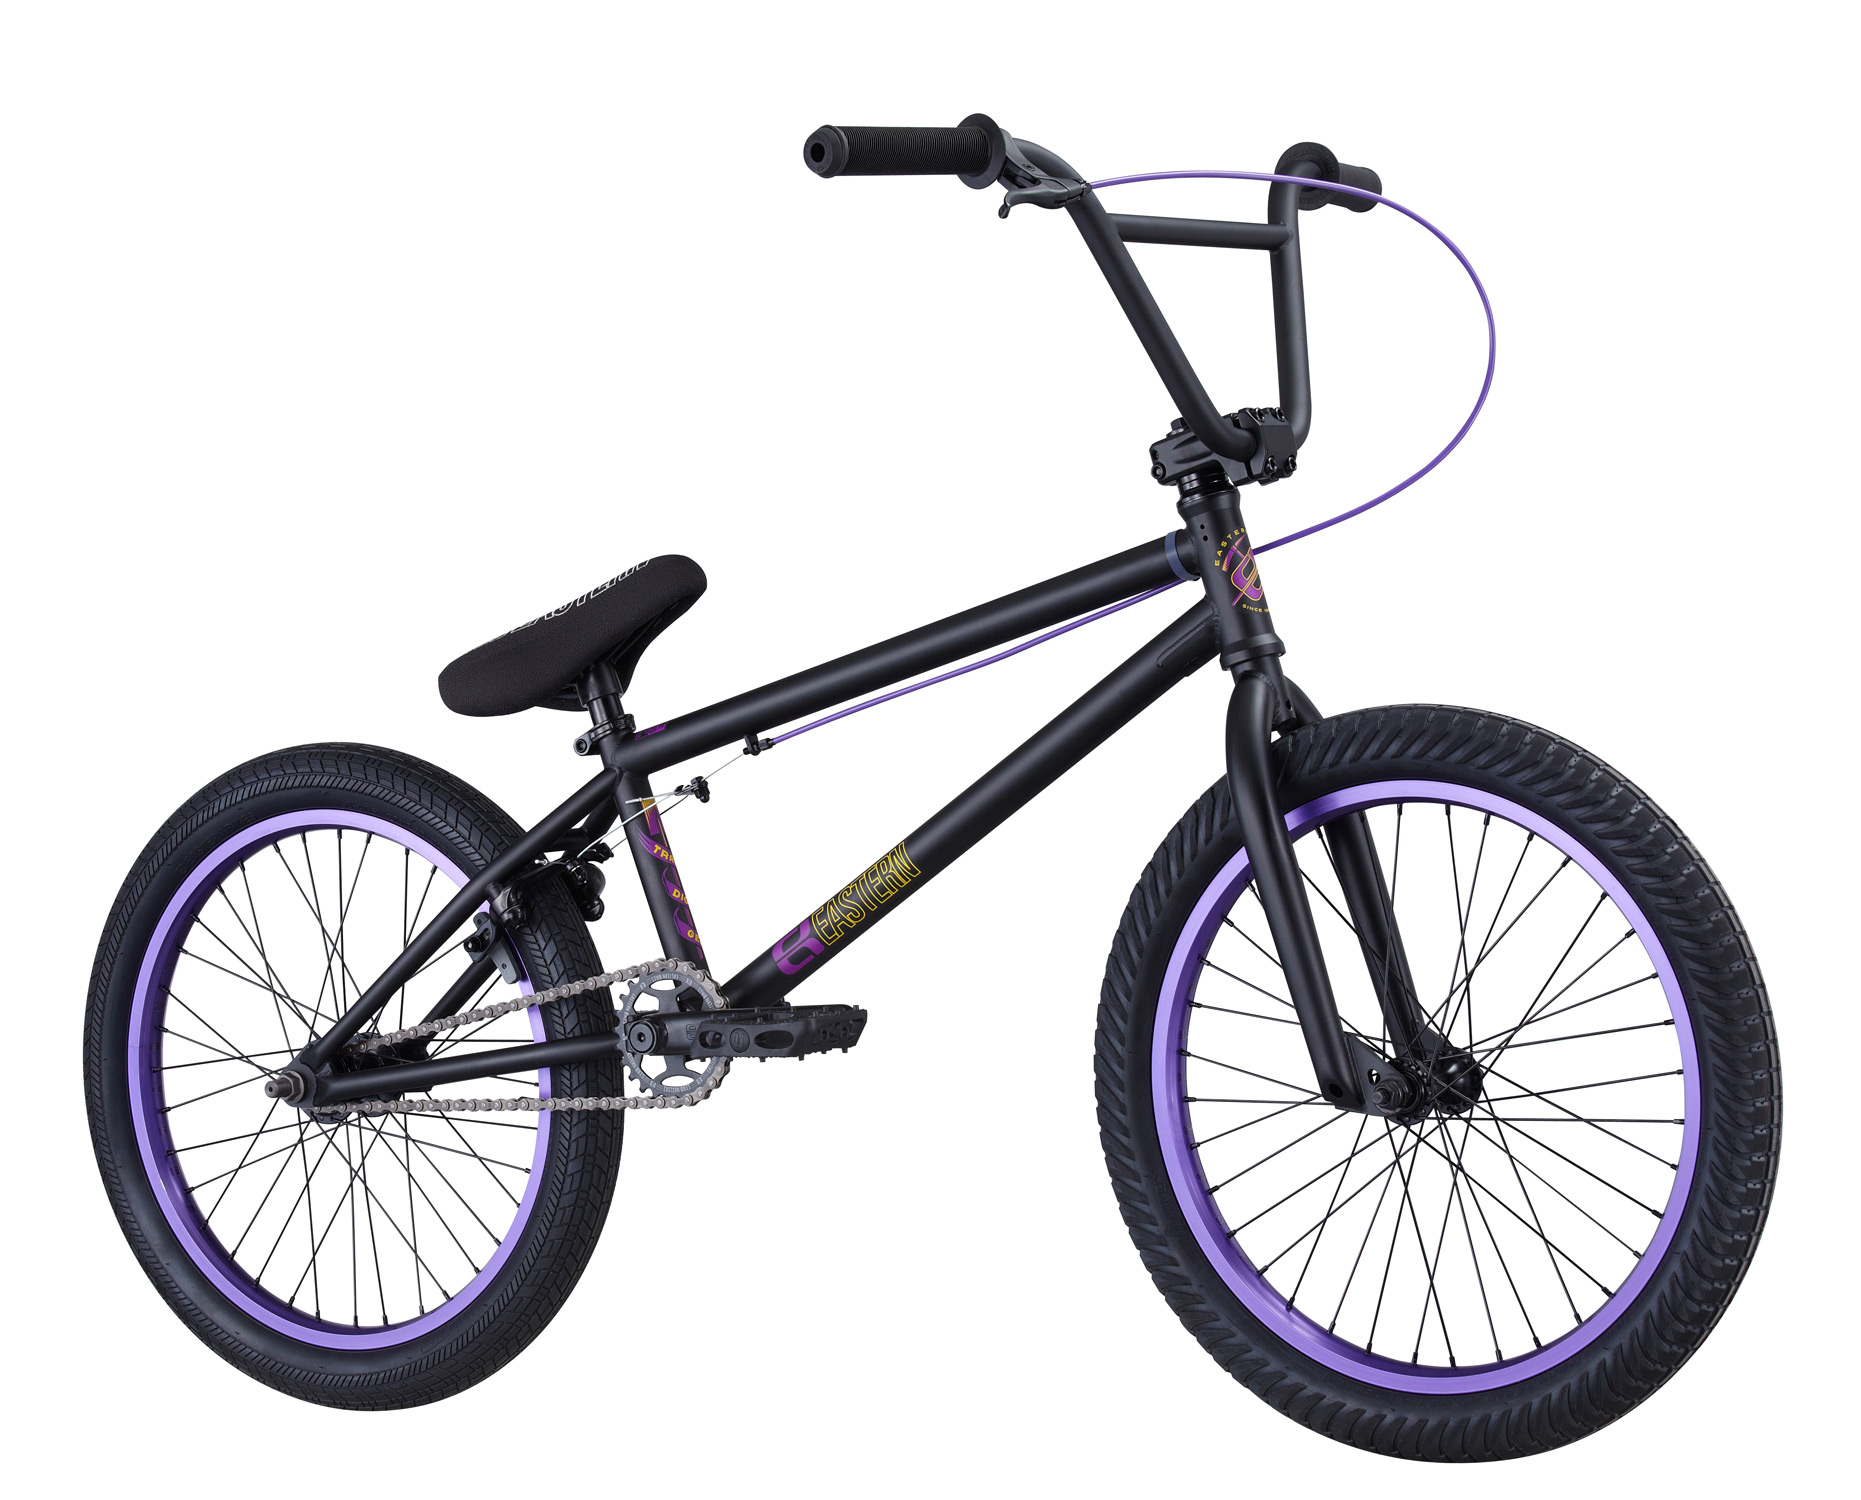 "BMX Key Features of the Eastern Traildigger BMX Bike: WEIGHT: 26 LBS TOP TUBE SIZE: 21"" COLORS : Matte Black/Purple, Matte Black/Red, Gloss White GEARING: 25/9 Micro-drive FRAME: Traildigger frame w/ 4130 chromoly downtube, integrated headset & mid BB. Holes for replaceable gyro tabs. 78mm wide BB to allow for wider tire clearance. Eastern Promise: lifetime warranty*, lifetime upgrade policy** FORK: Eastern Full 4130 Chromoly w/ Tapered Legs & Hangfree Dropout Design BARS: Eastern 8.5""x 28.5"" , 1"" Upsweep, 12"" Backsweep HEADSET: Sealed Bearing 45/45 Integrated BB: Sealed Bearing, Mid Bottom Bracket PEDALS: Eastern Crown Pedals GRIPS: Eastern Truffle Grip STEM: Forged Alloy Front Load SPROCKET: Eastern Phorcys 25T steel CRANKS: Tubular chromoly heat-treated 3pc. cranks with 8 spline spindle SEAT: Eastern logo 1pc. seat and alloy post combo, Durable Nylon Cover, and Stitched Logo SEATPOST: Alloy post included with seat TIRES: FRONT - Eastern Curb Monkey 20"" x 2.3"" OEM REAR - Eastern Fuquay Flyer 20""x 2.3"" OEM FRONT HUB: Sealed Bearing, 36 hole Alloy Shell, 3/8"" Chromoly axle REAR HUB: Fully Sealed 36 hole cassette hub, Forged Alloy Shell, 1pc. 9-tooth chromoly driver, 14mm chromoly axle, 5 sealed bearings. RIMS: Double Wall Alloy, 36 Hole REAR BRAKES: Tektro Forged Alloy U-Brake / Straight Cable / Eastern 6061 Forged Lever w/ Hinged Clamp FREEWHEEL: Sealed bearing 9-tooth 1pc. driver CHAIN: KMC SEAT CLAMP: Eastern Slant Forged PEGS: 2 pegs - $399.99"